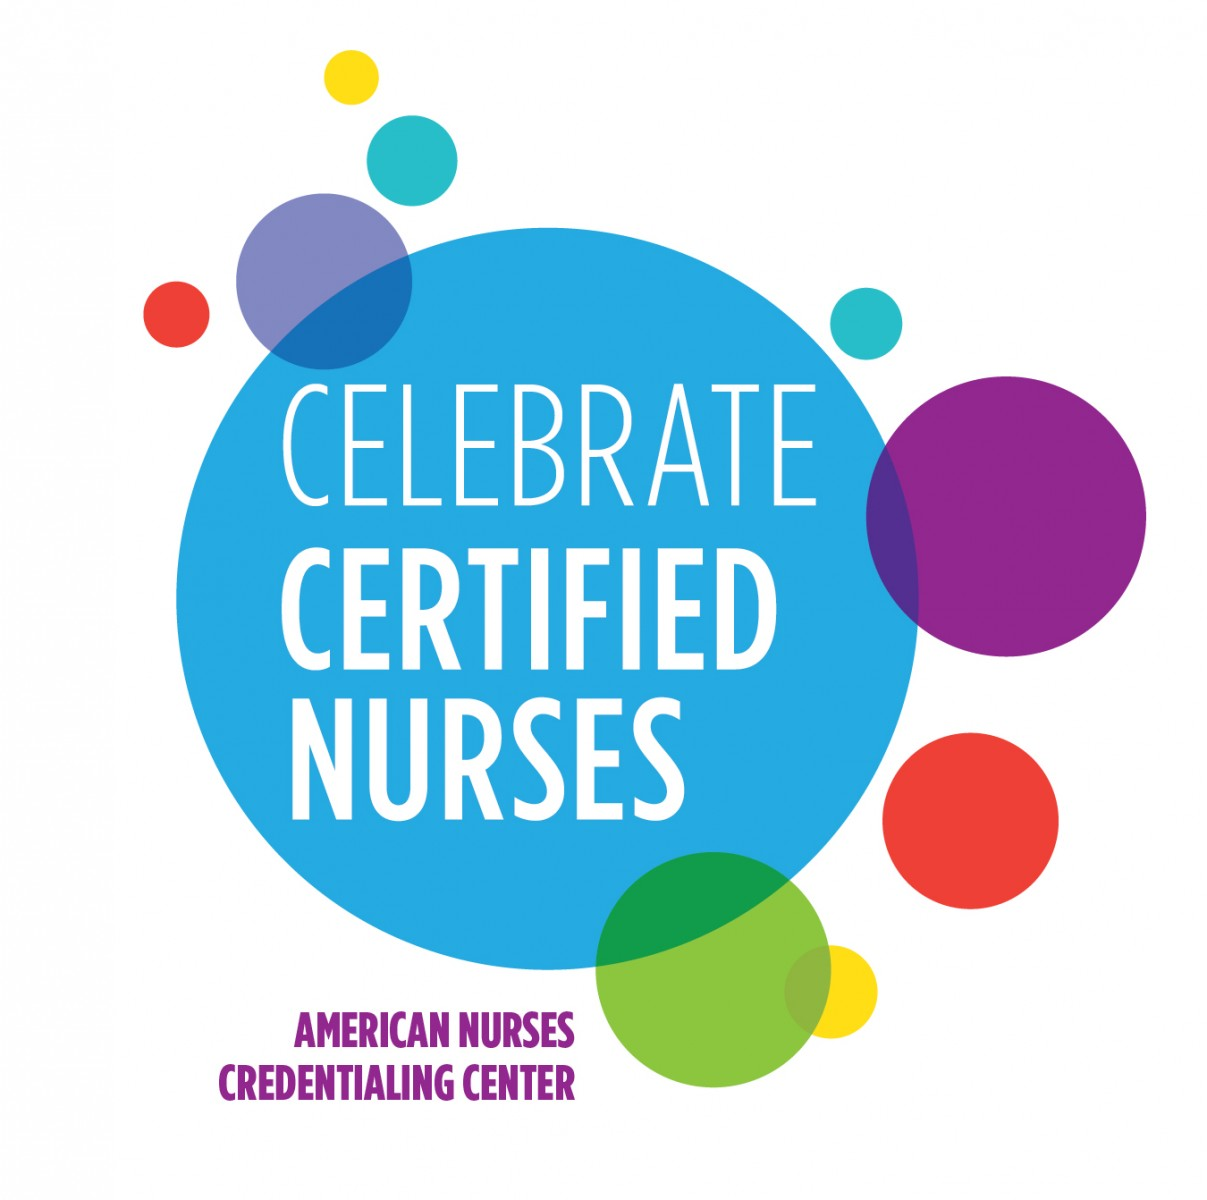 Riverside Healthcare Celebrates Certified Nurses Day